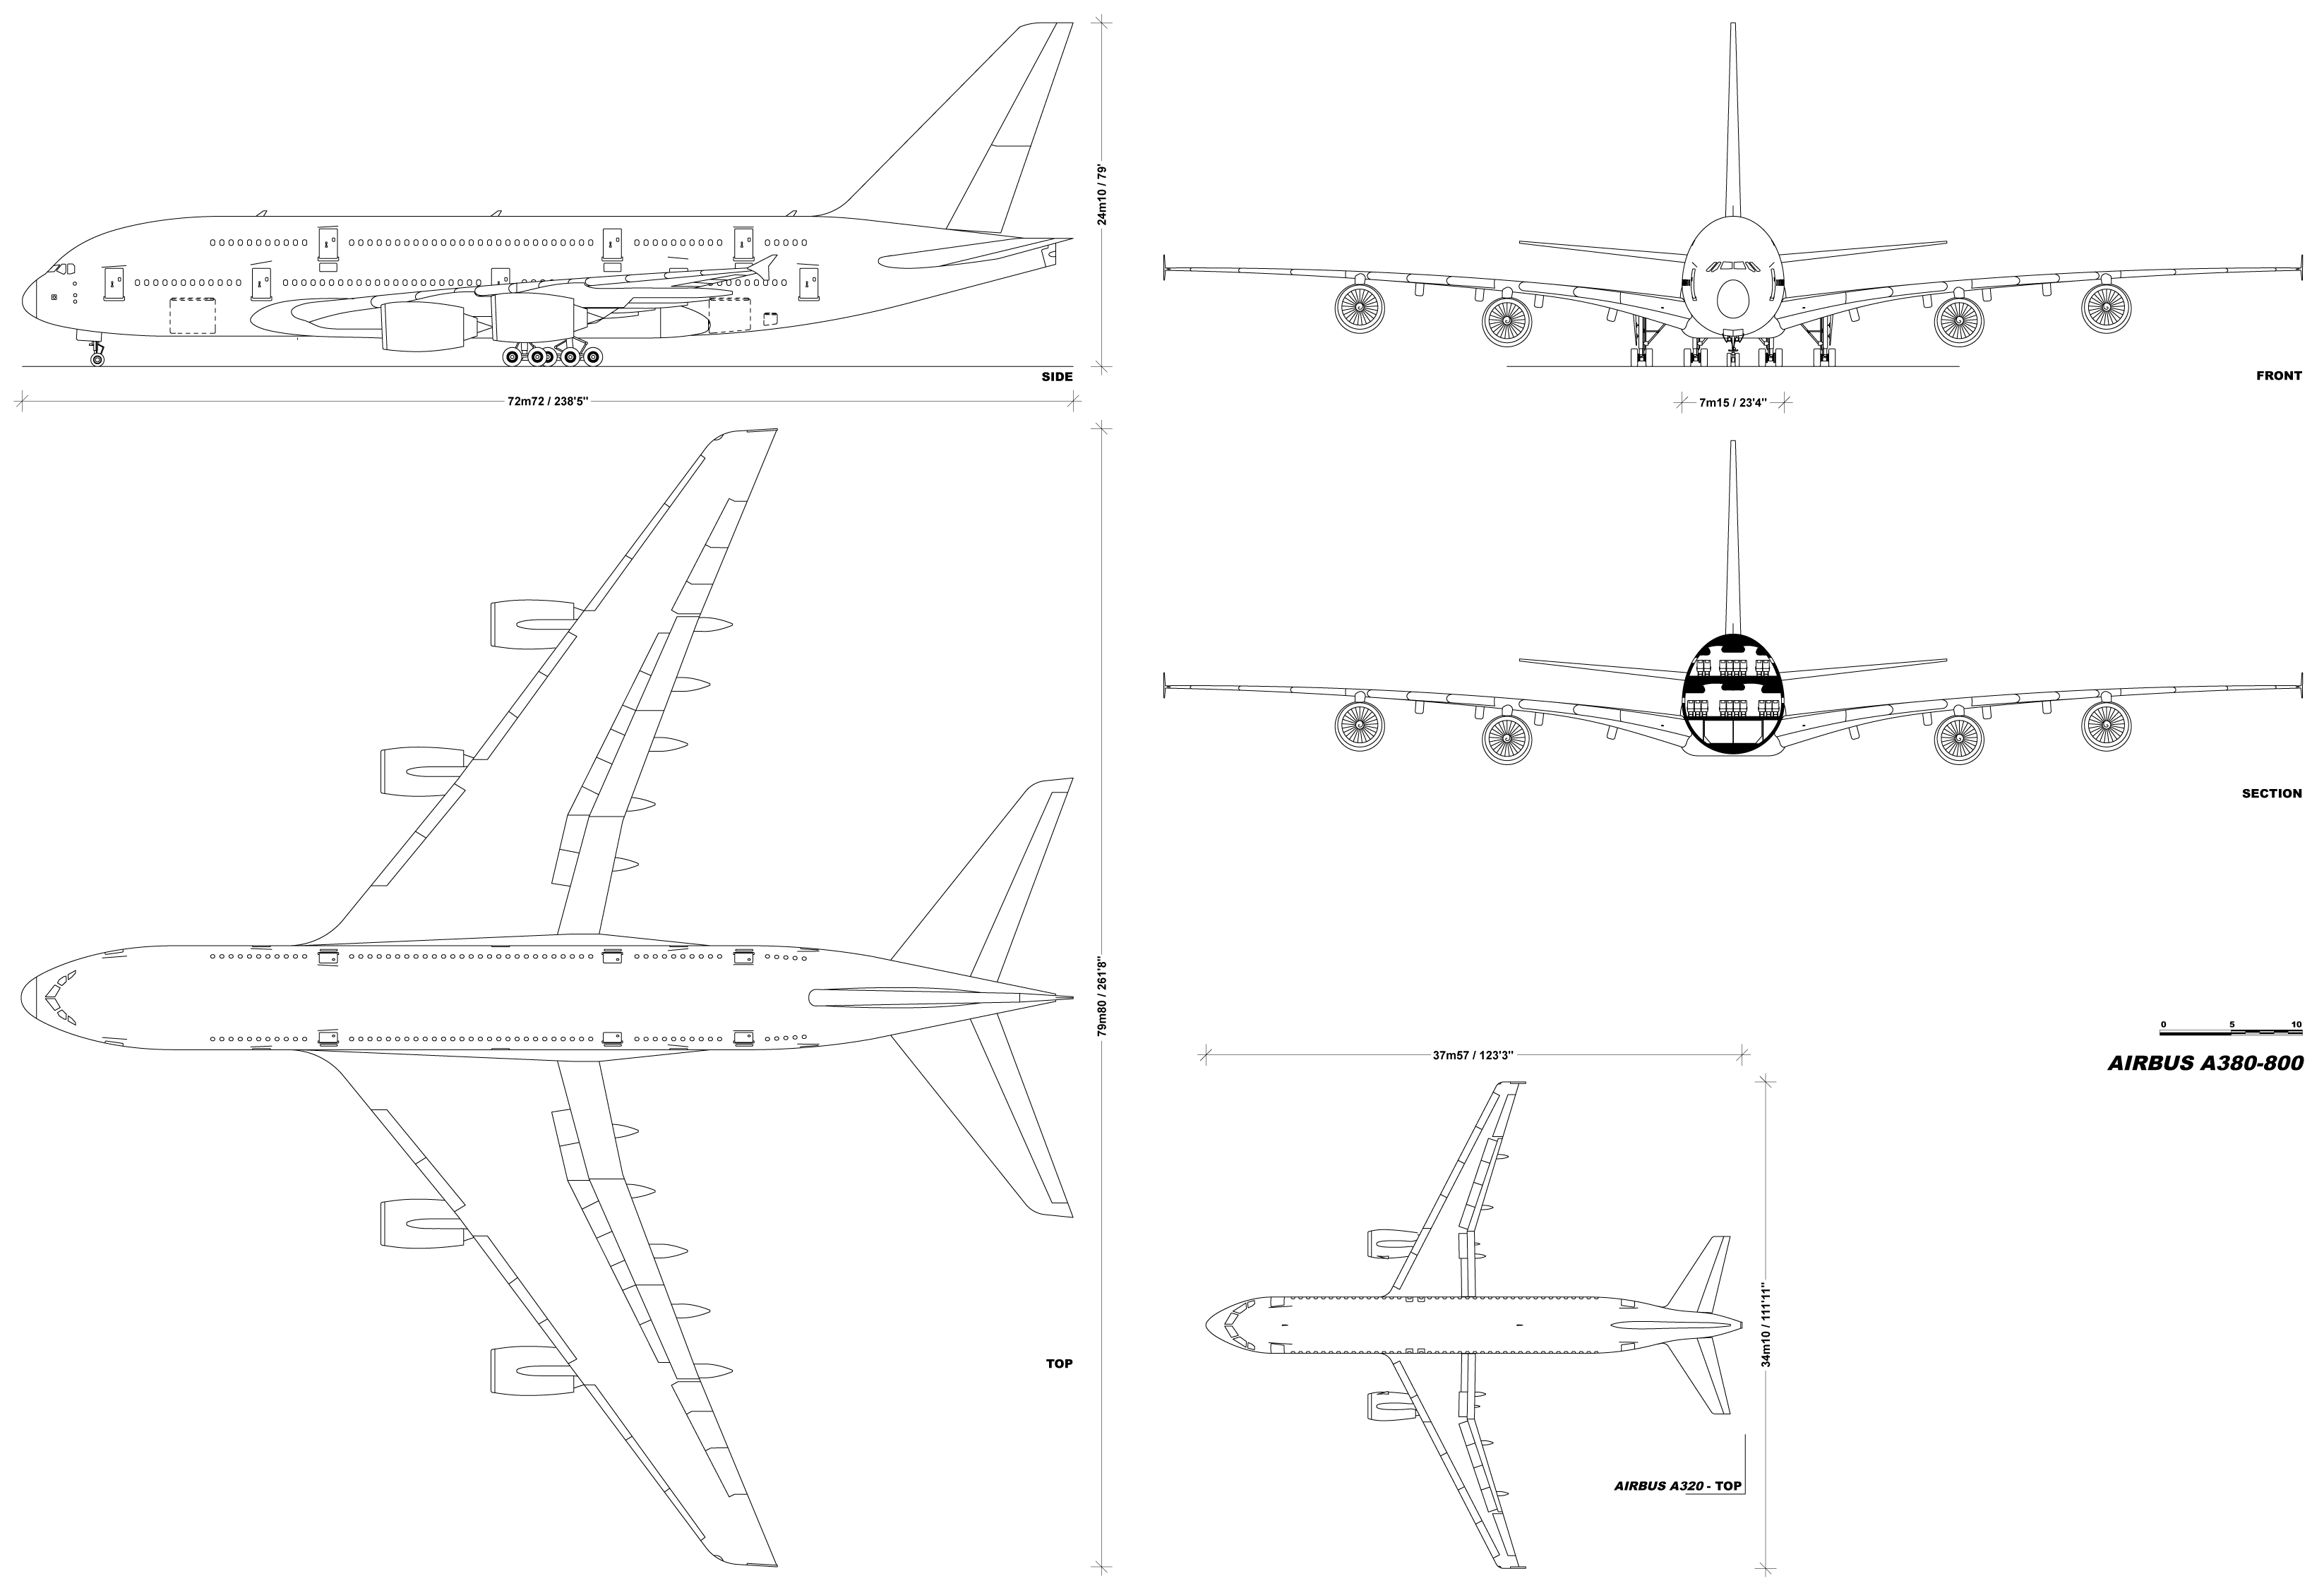 Airbus a380 blueprint download free blueprint for 3d modeling airbus a380 800 blueprint malvernweather Images